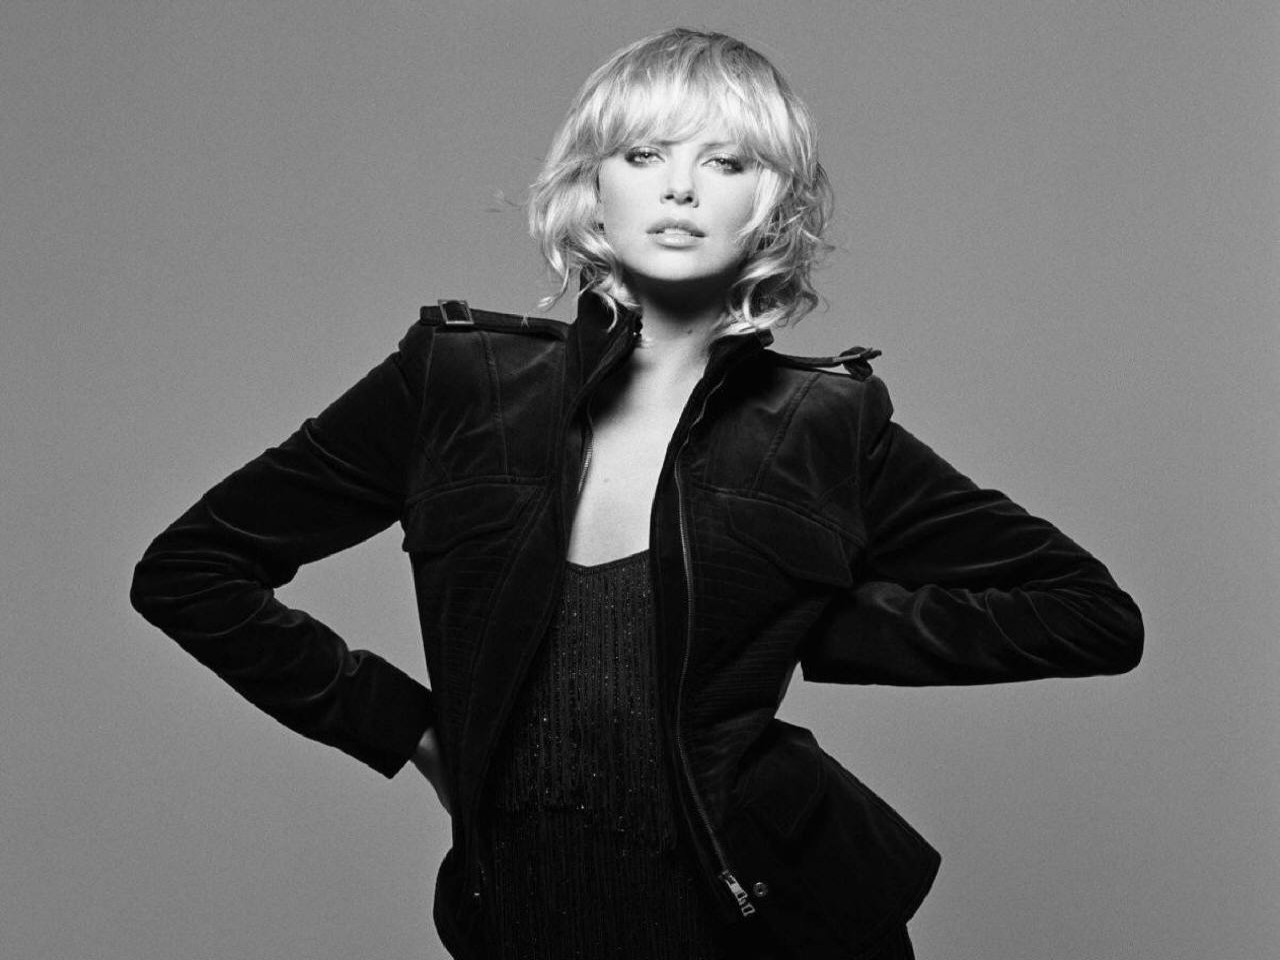 Wallpaper di Charlize Theron in tailleur